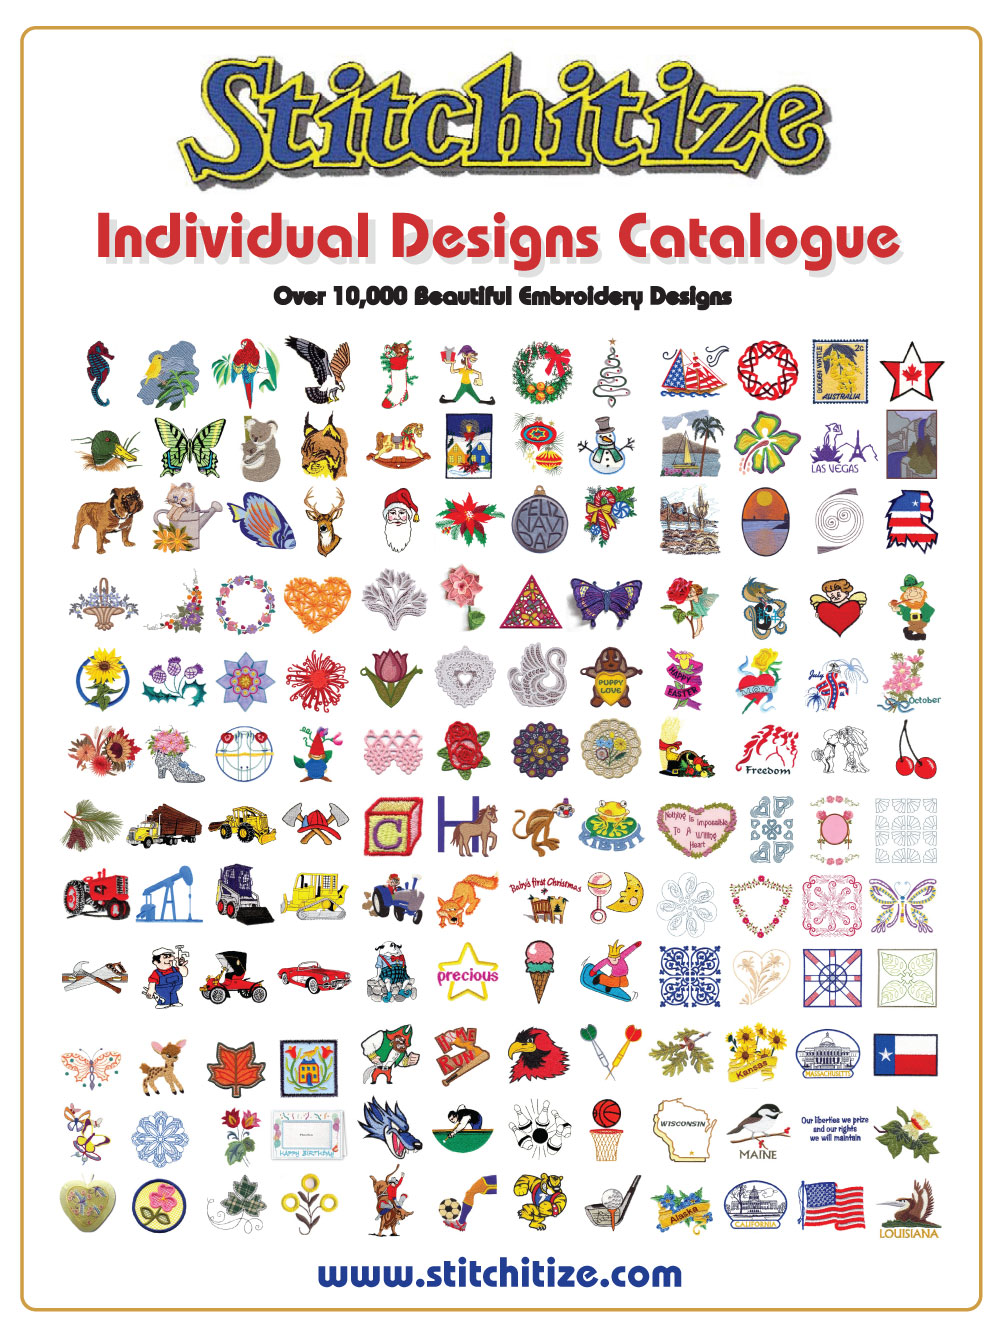 Printable catalogues custom embroidery designs by stitchitize bankloansurffo Gallery